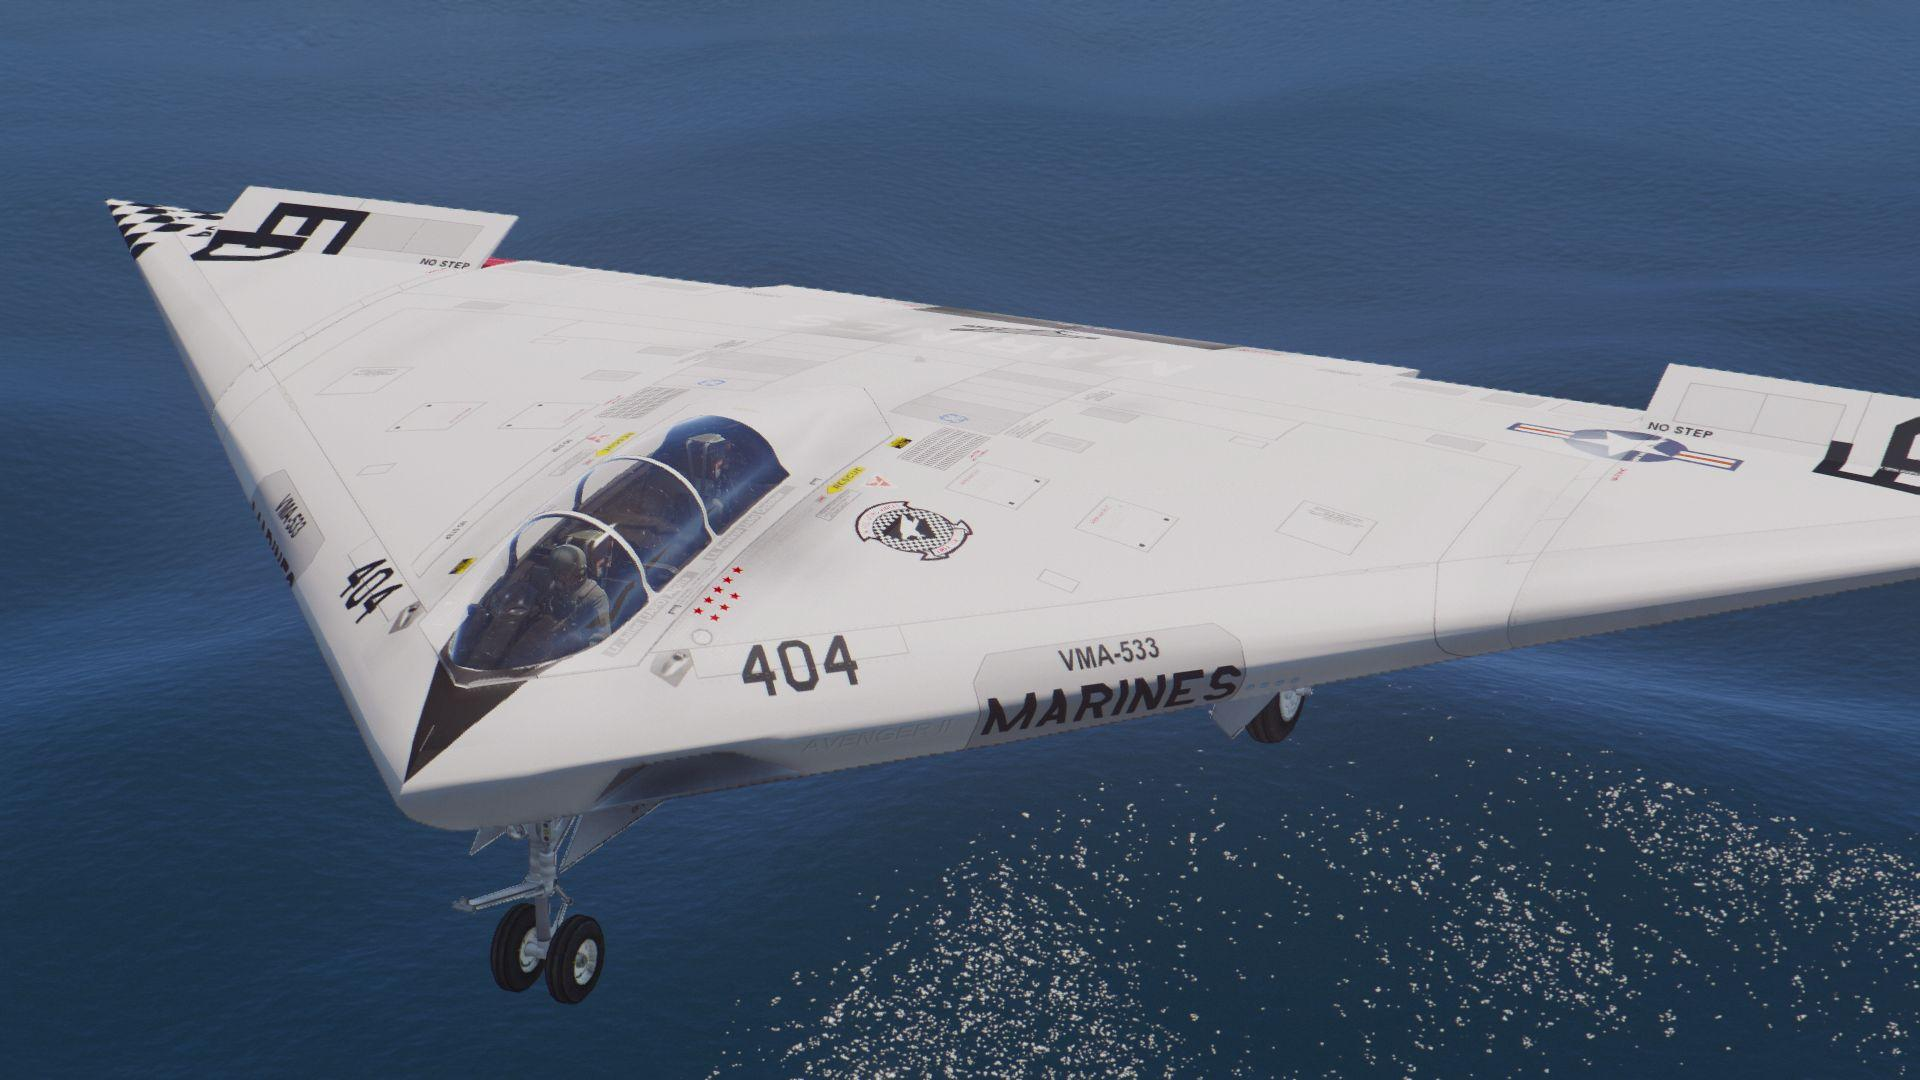 A-12a Avenger Ii Navy Stealth Bomber  Add-on